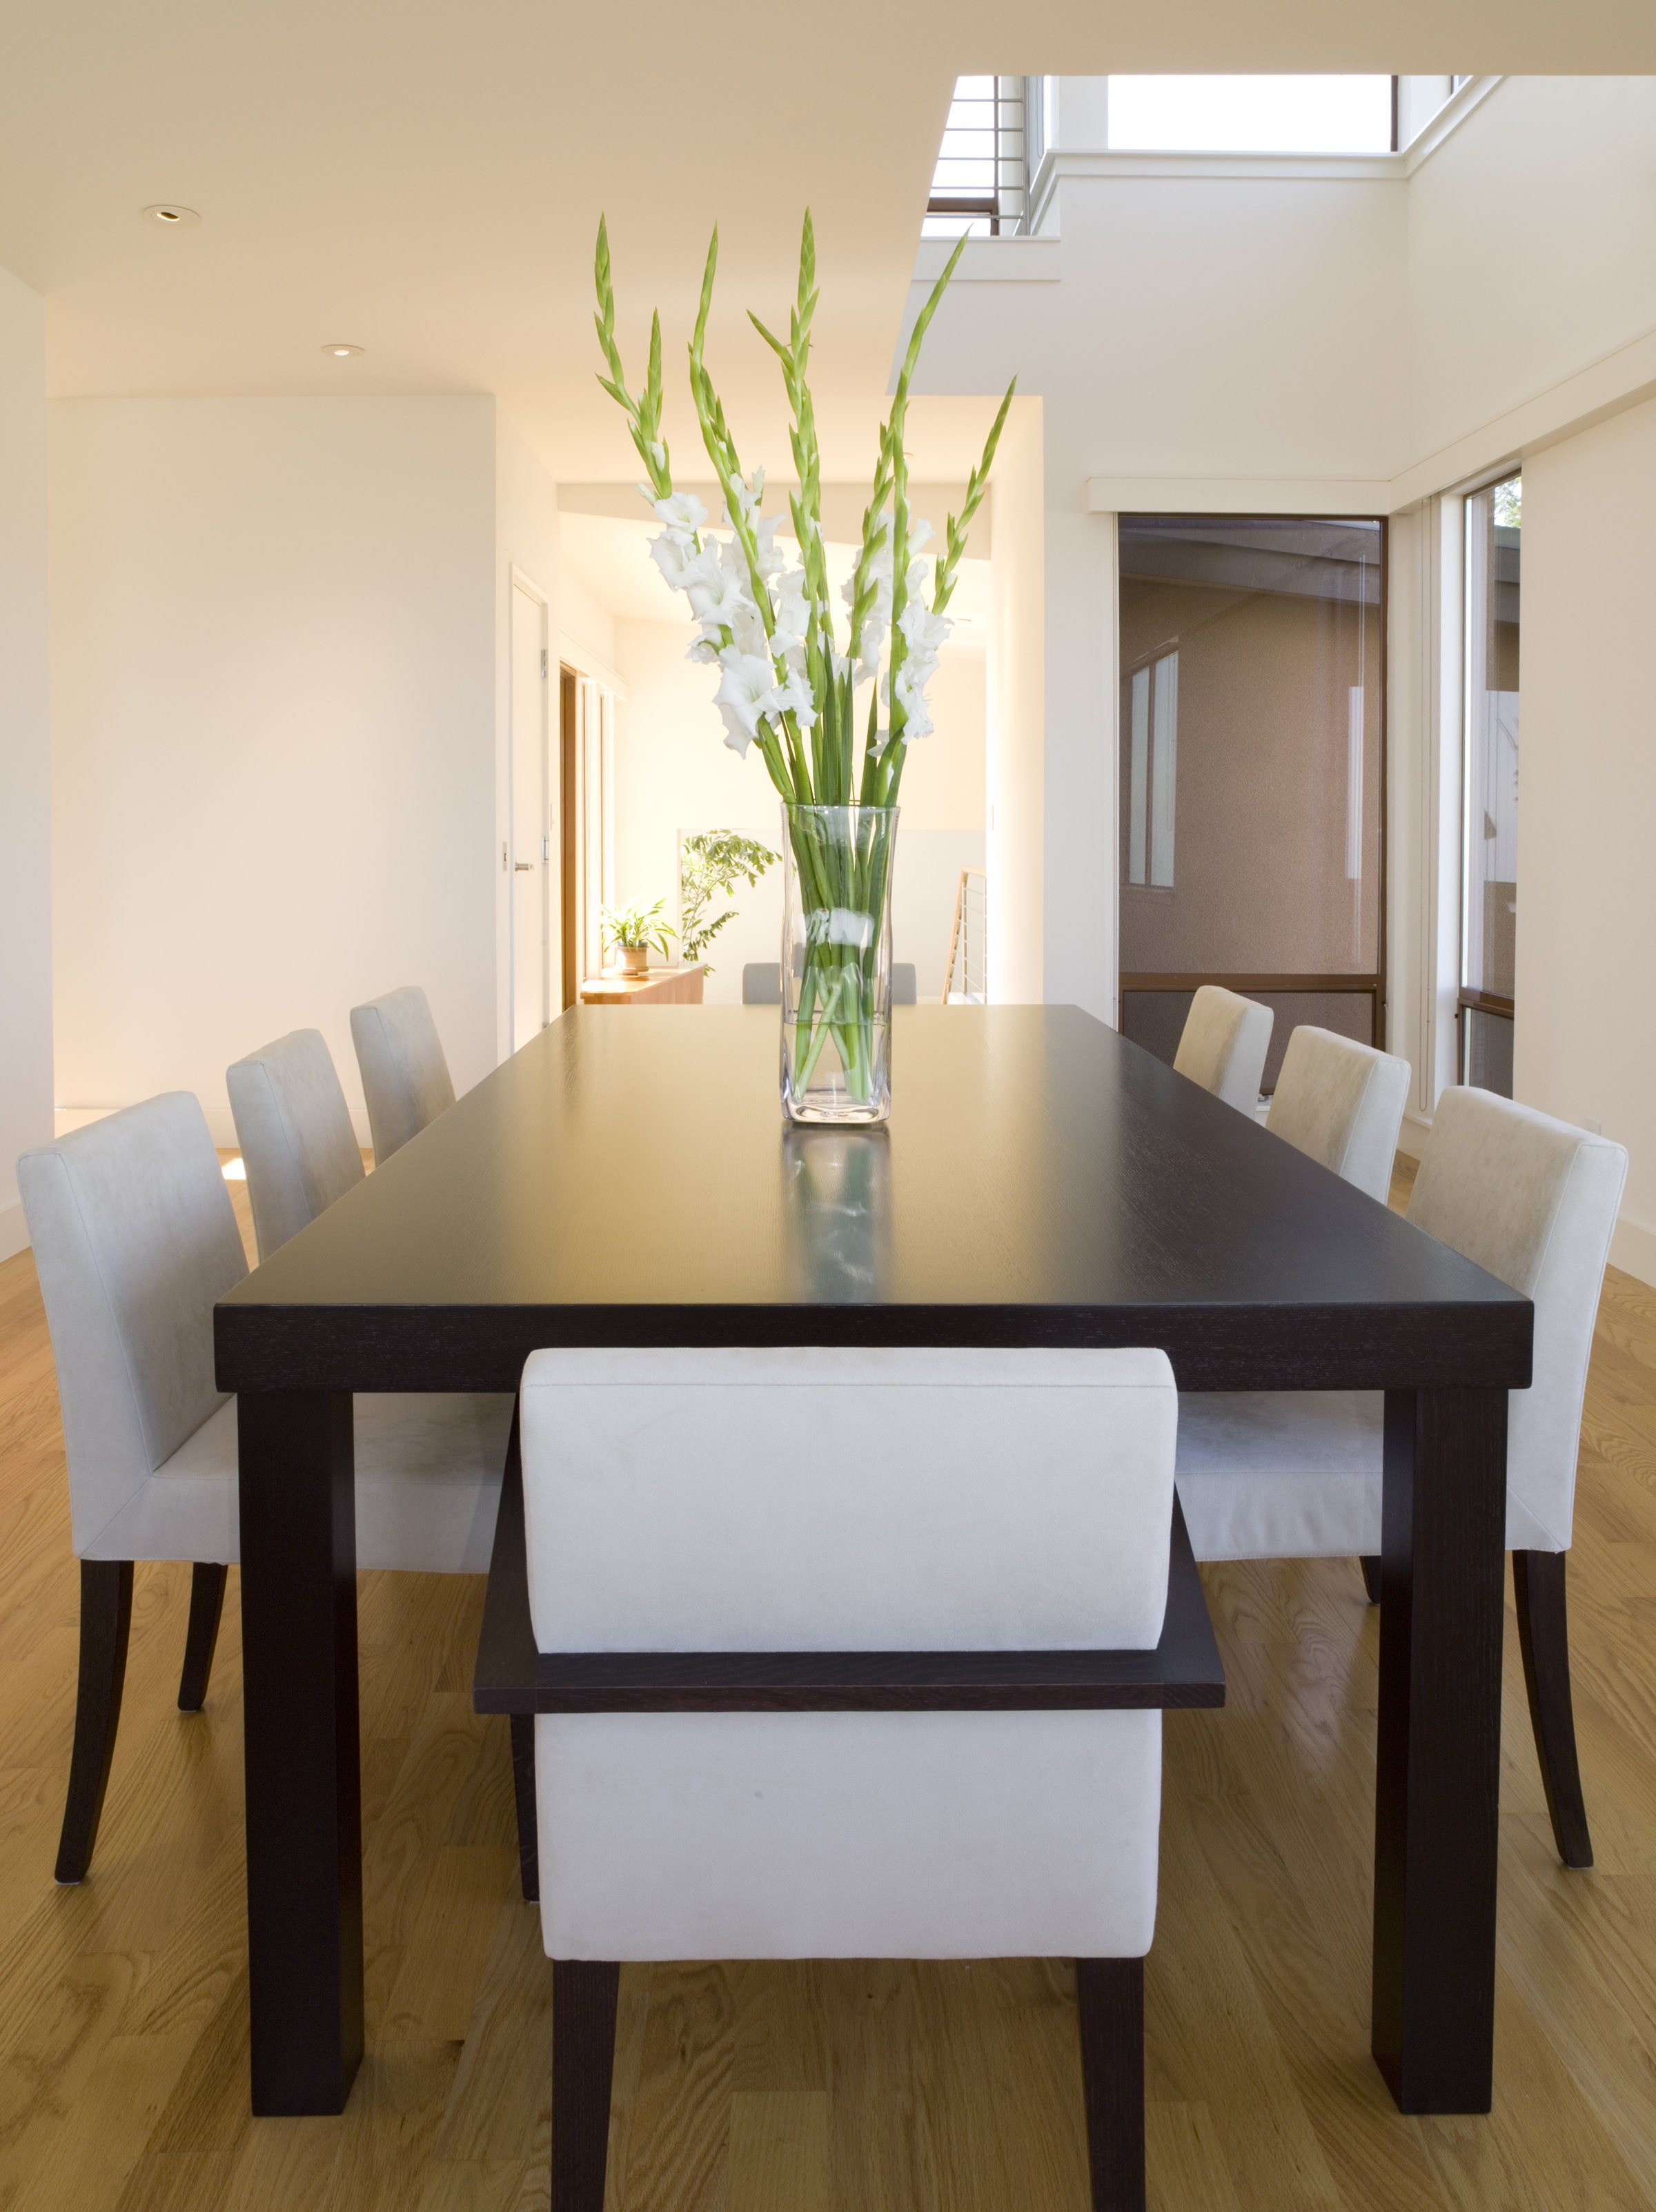 Light Filled Contemporary Living Rooms: 30 Modern Dining Room Interior Design And Ideas #17997